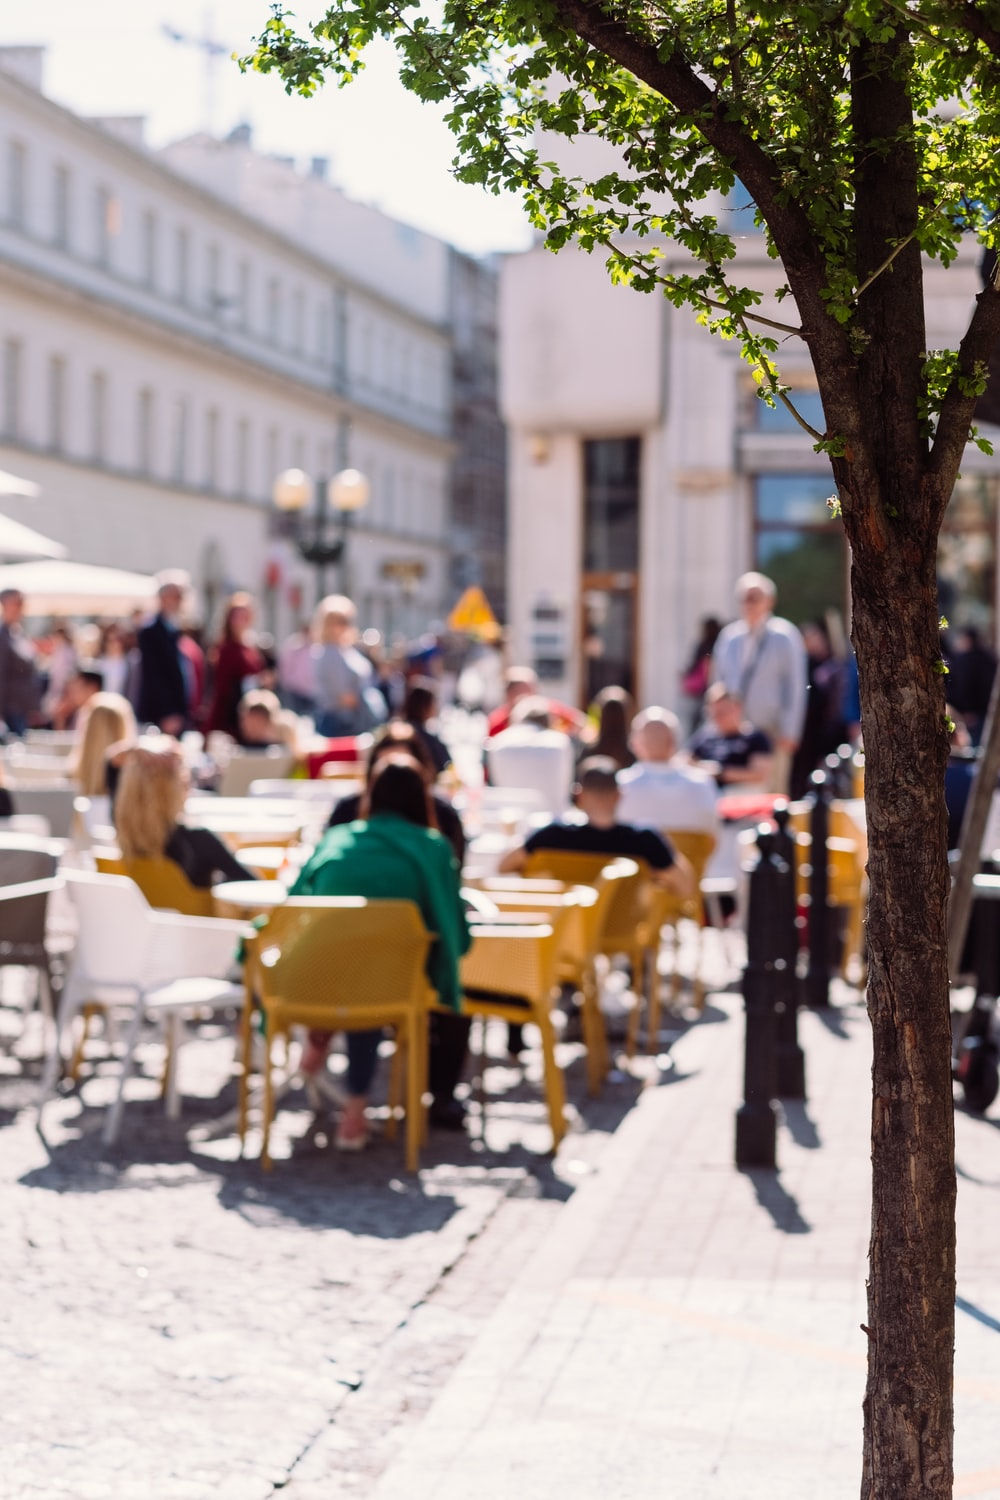 people sitting on brown wooden chairs during daytime